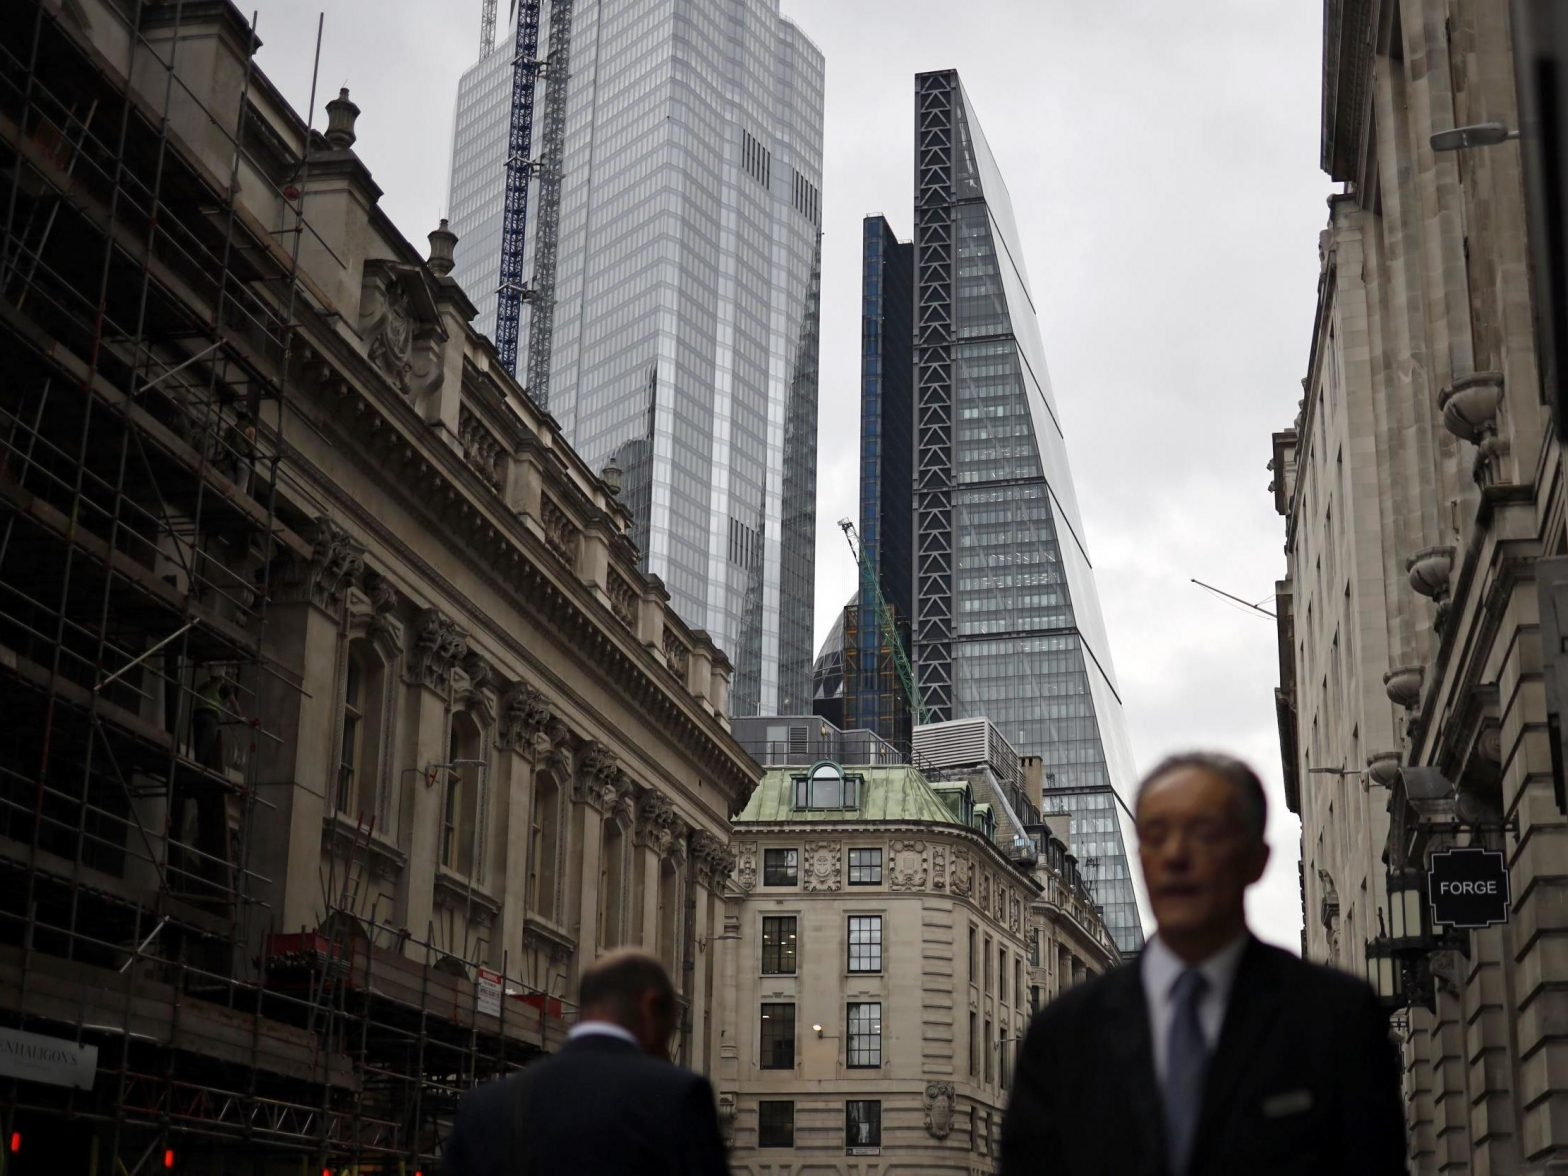 New York surges ahead of London as world's top finance hub as Brexit undermines confidence